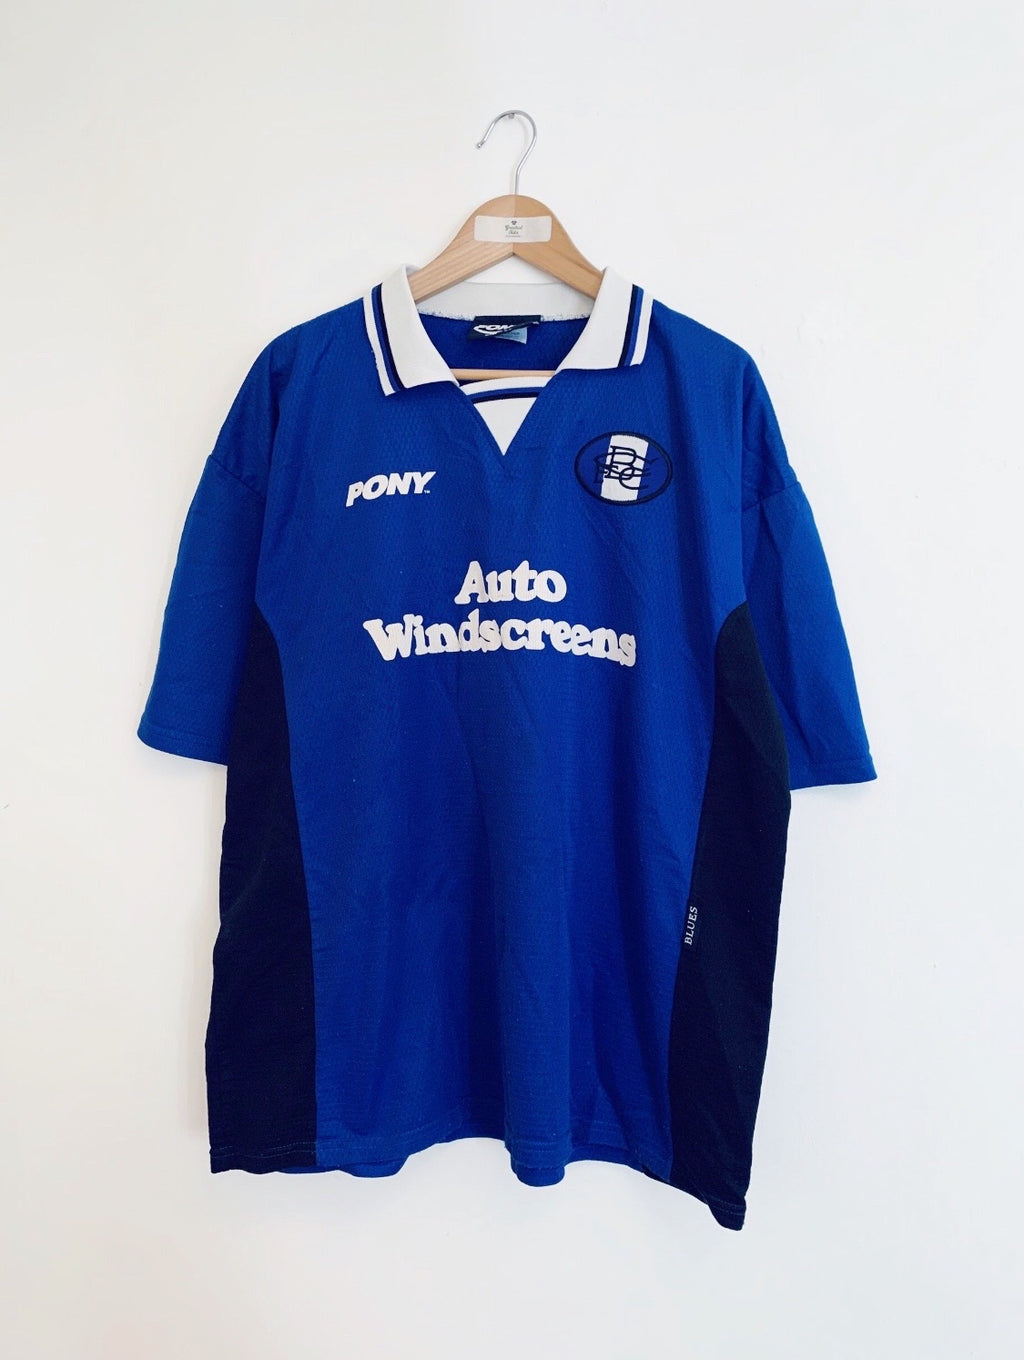 1996/97 Birmingham Home Shirt (XL) 6/10